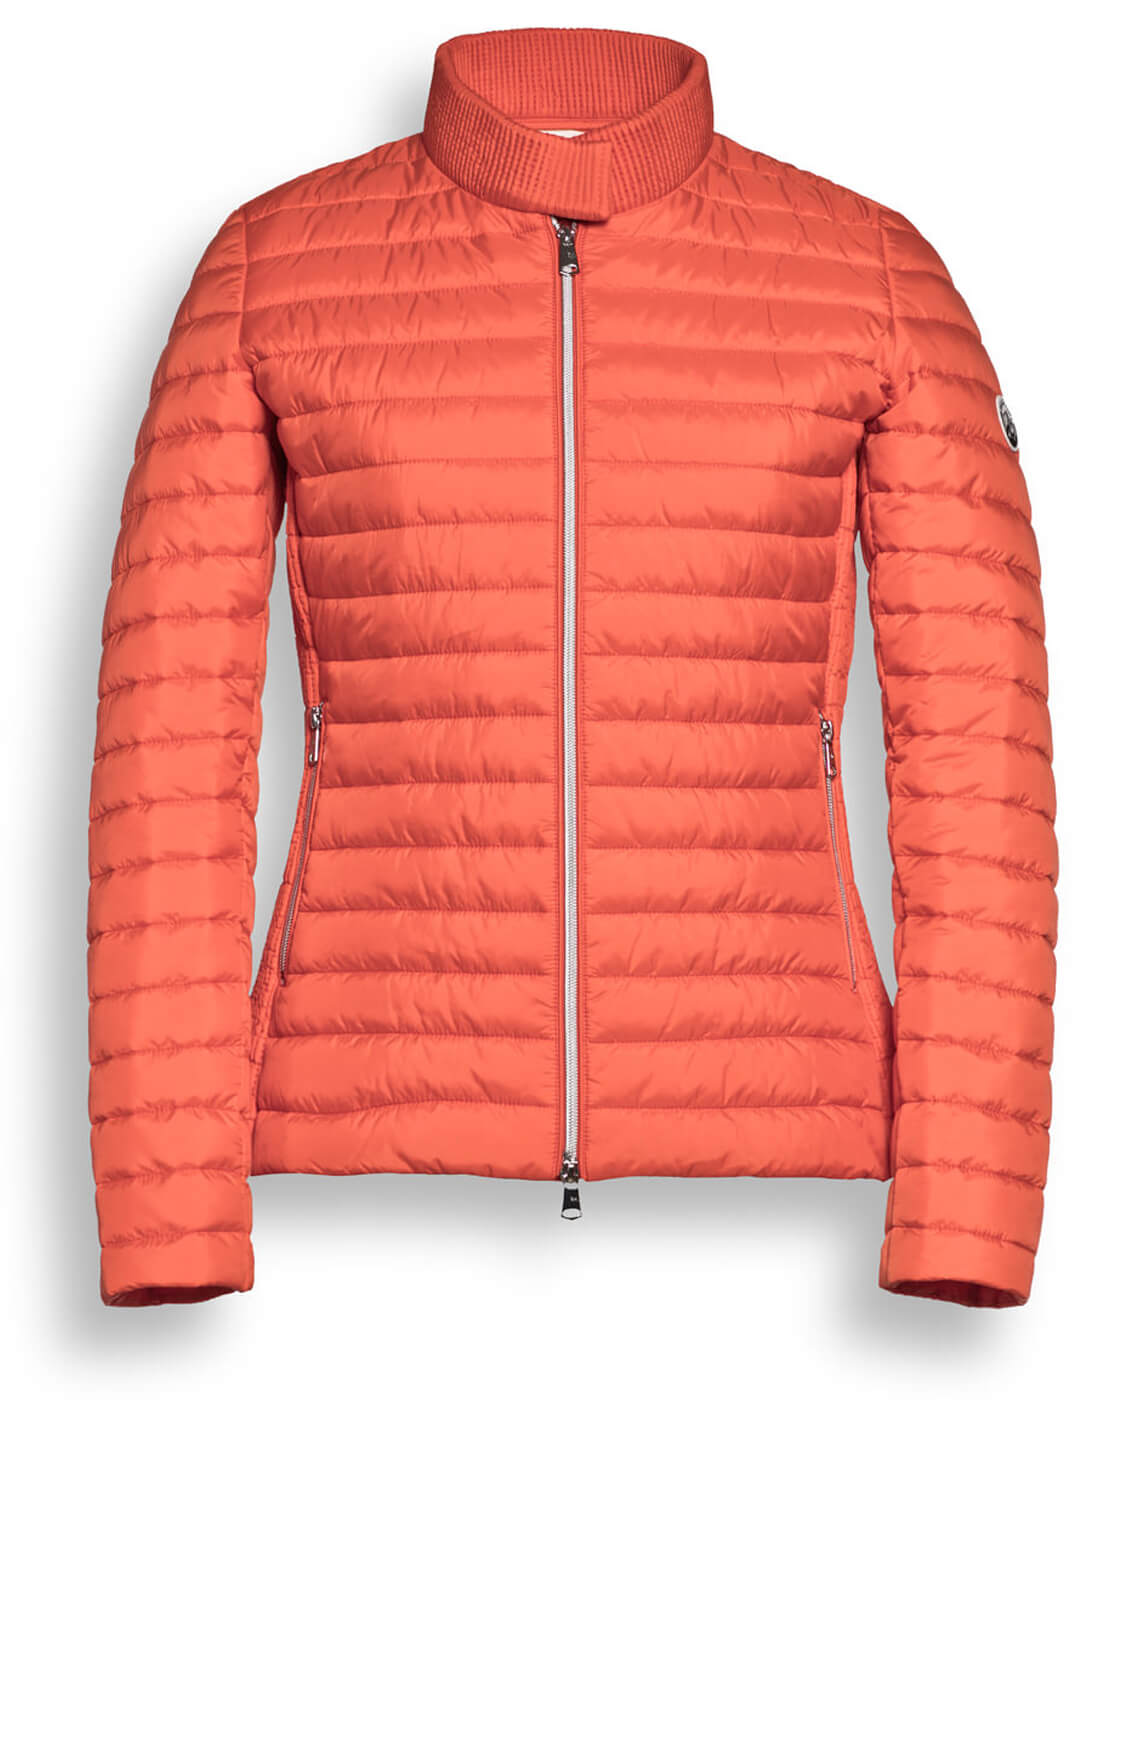 Beaumont Dames Windbreaker Oranje